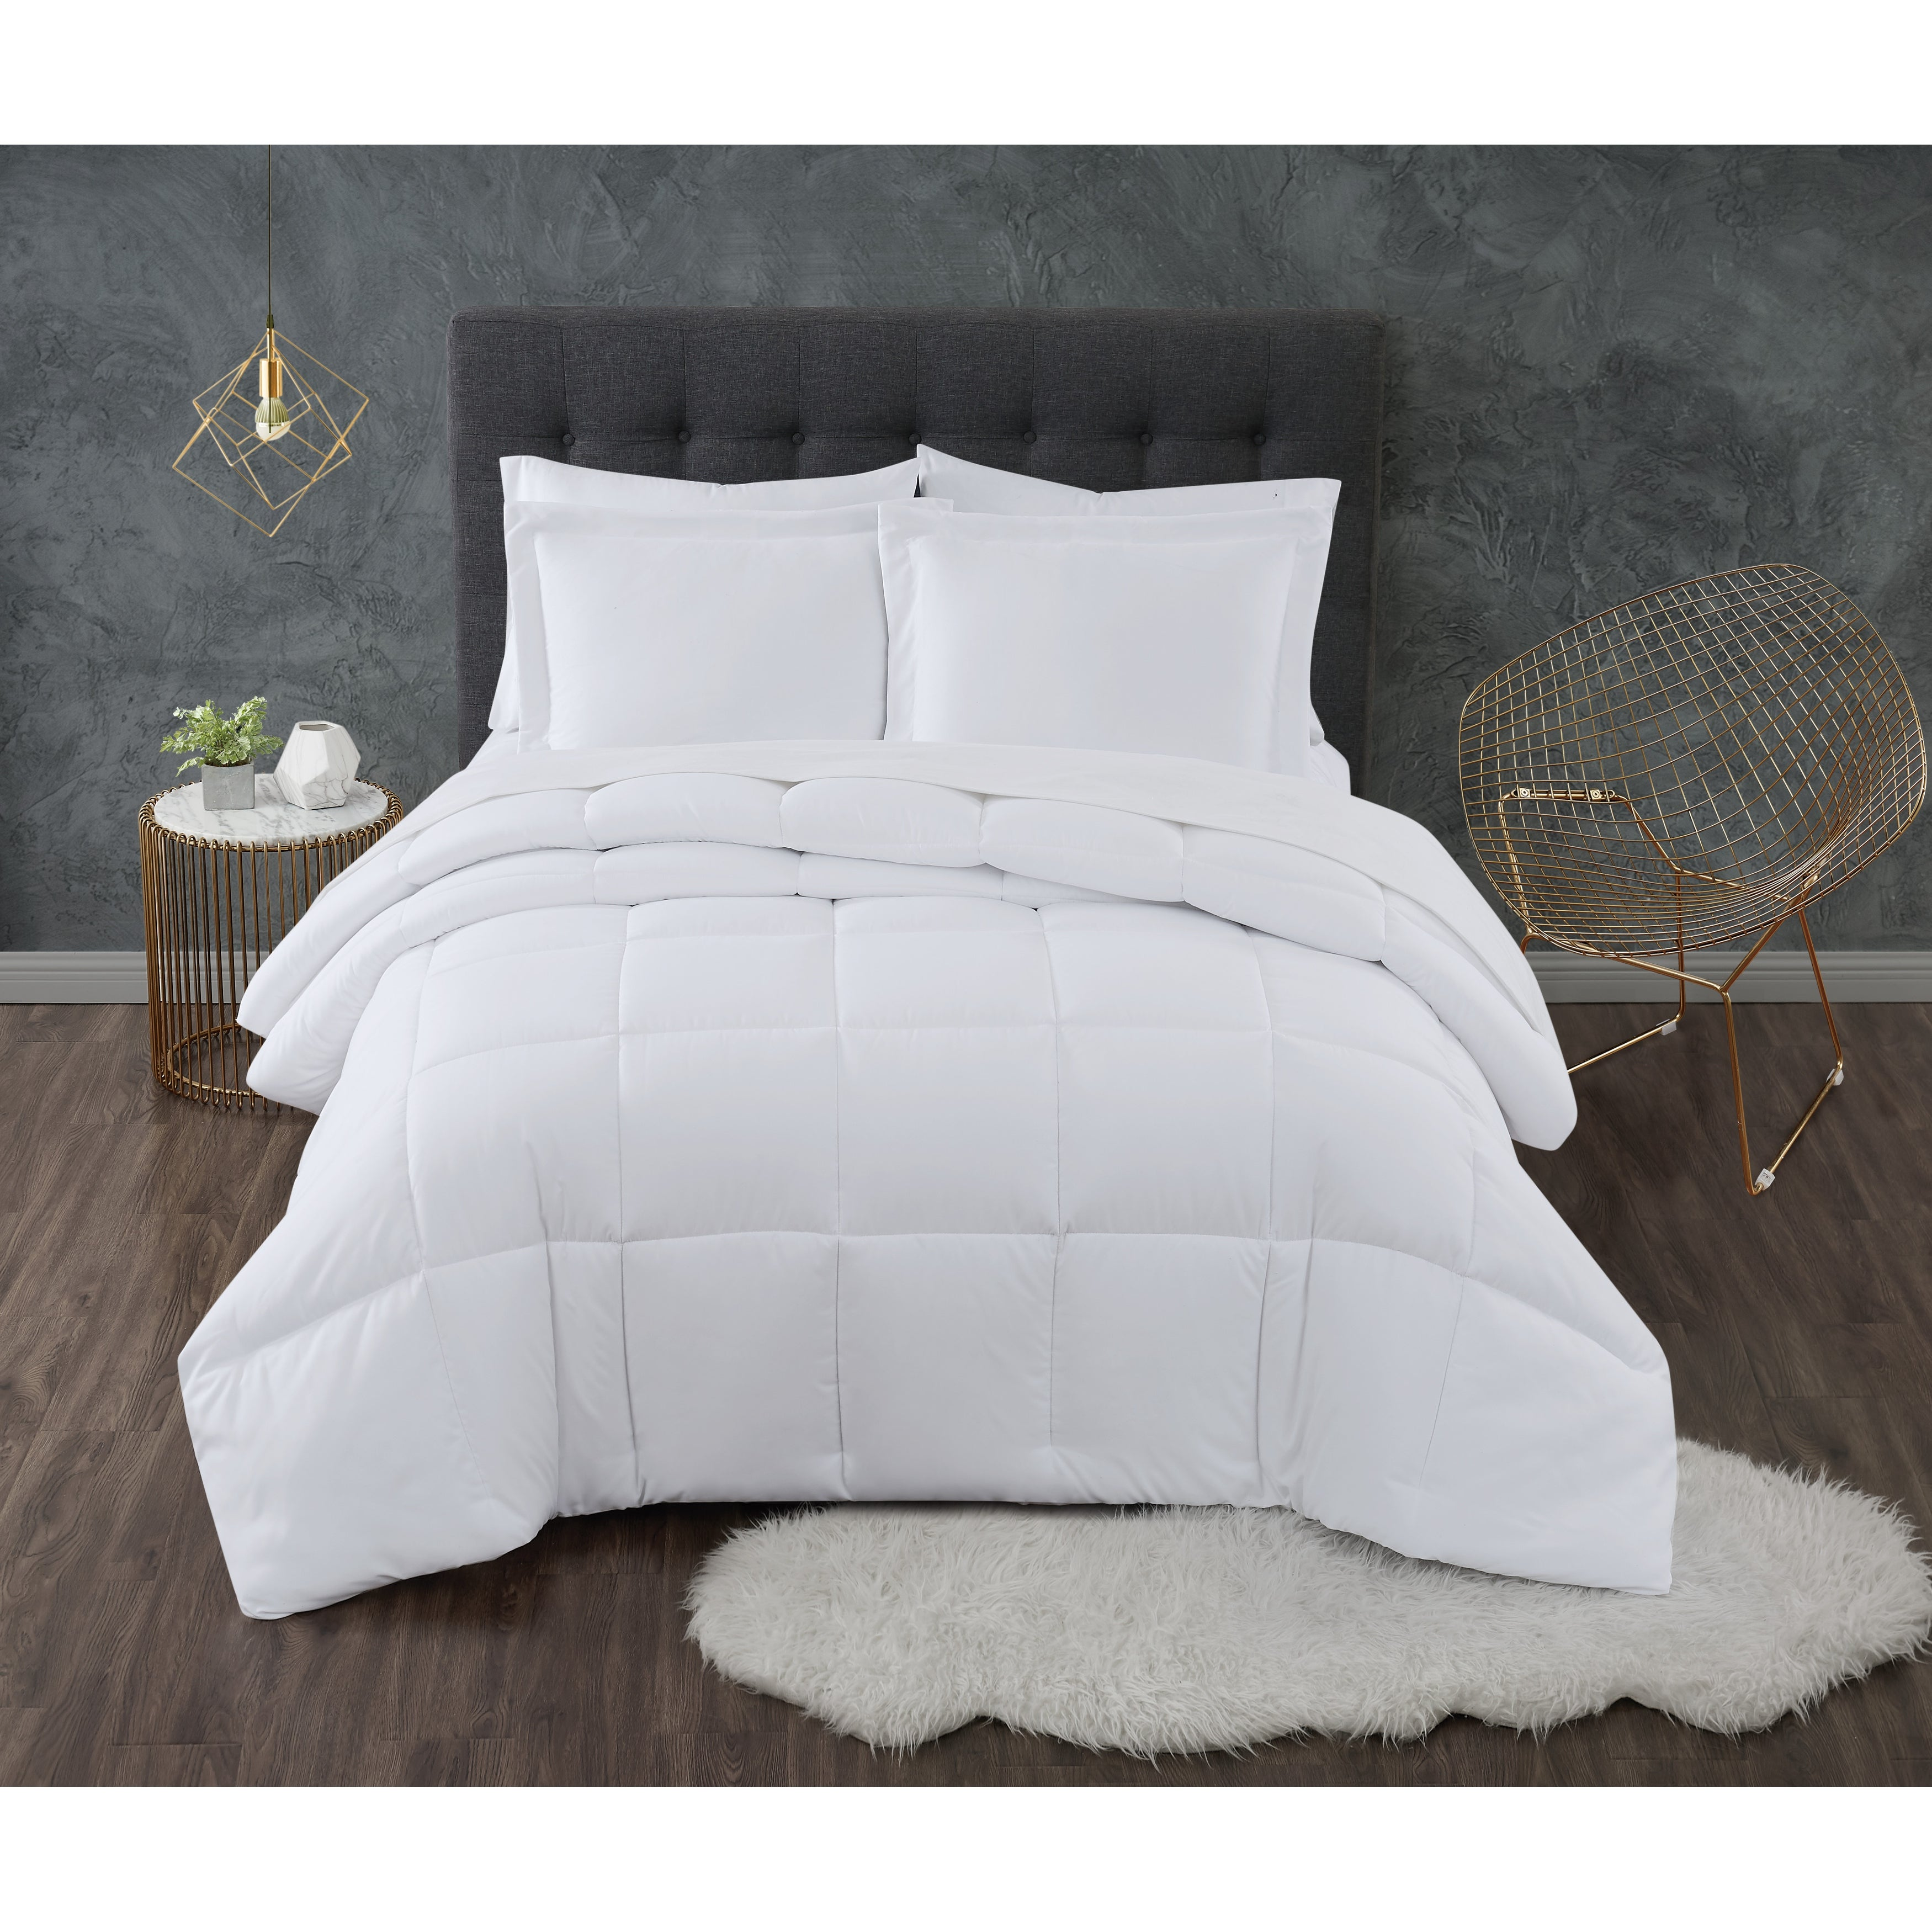 Truly Calm Antimicrobial 3 Piece Down Alternative Comforter Set Overstock 31730616